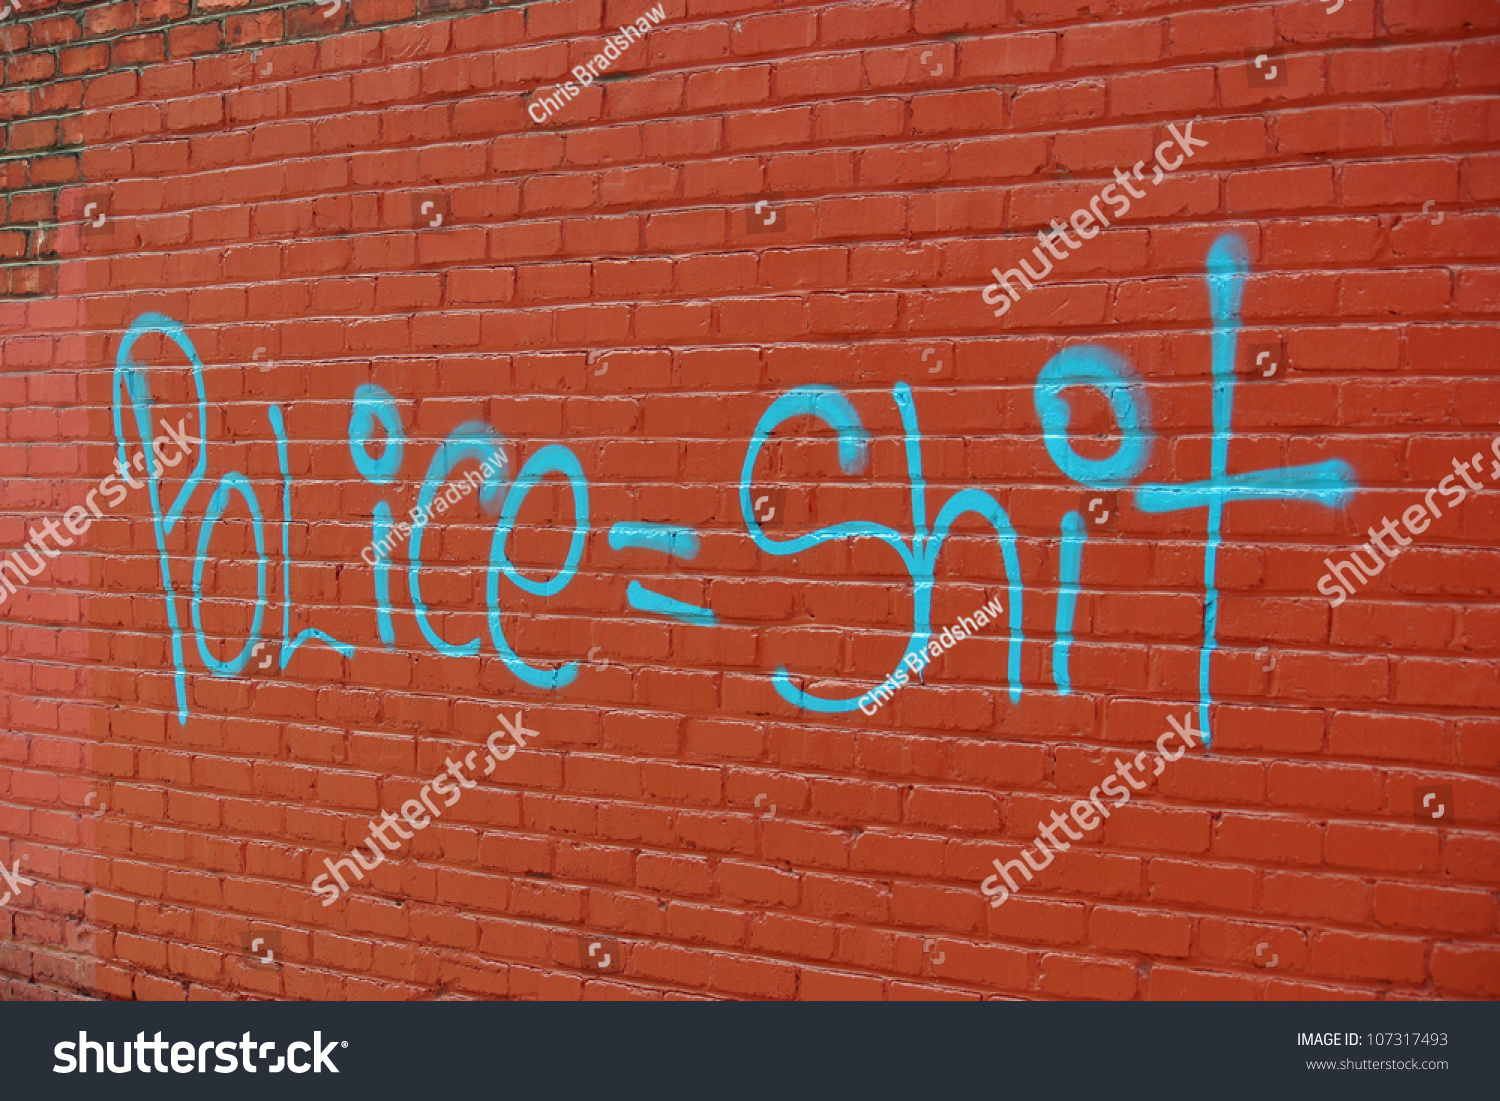 Red Brick Wall Graffiti Spray Painted Stock Photo